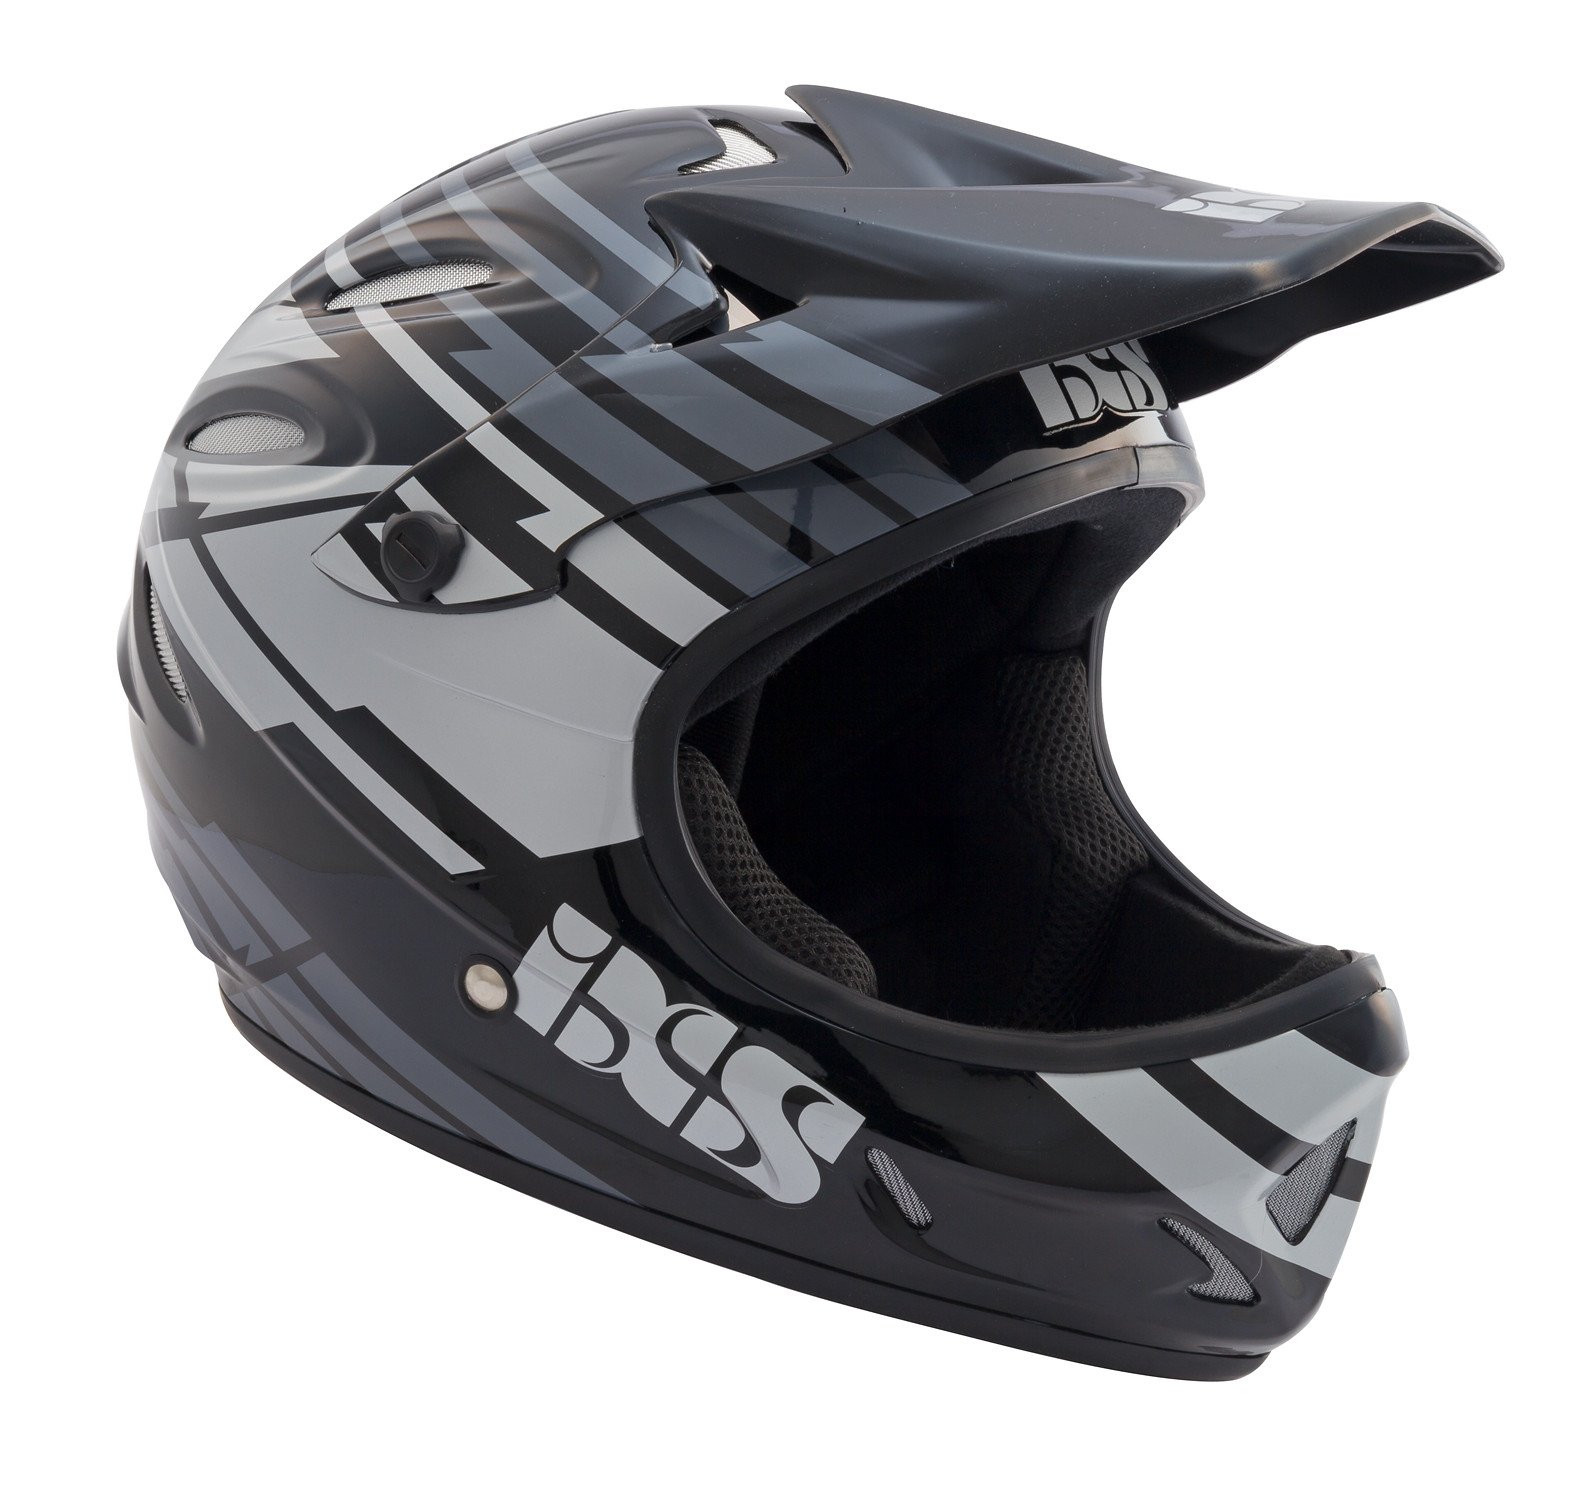 iXS Phobos-Anchor Full Face Helmet phobos anchor grey 1